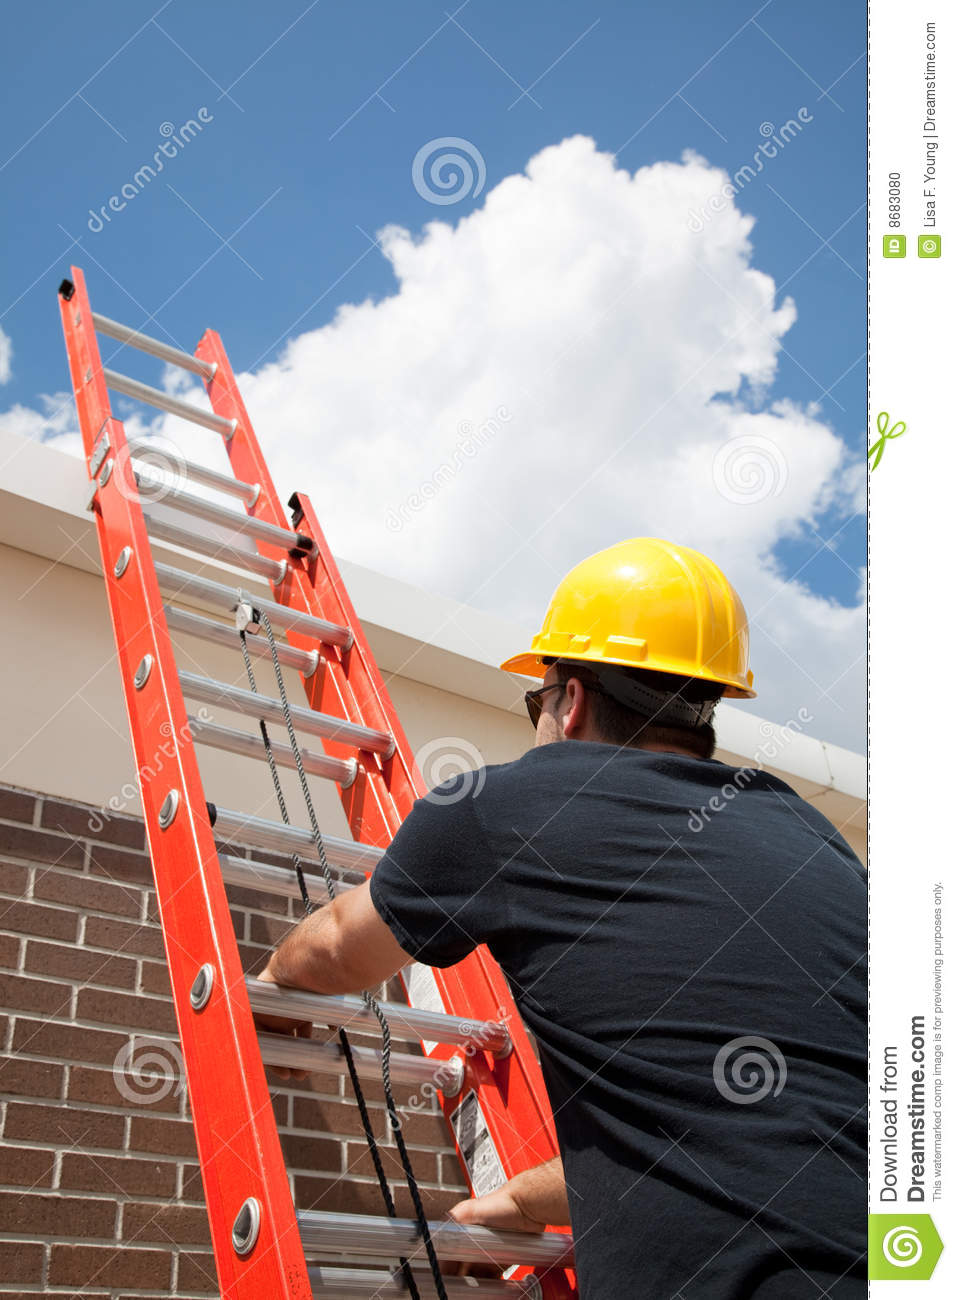 Construction Worker Climbs Ladder Stock Photo Image 8683080